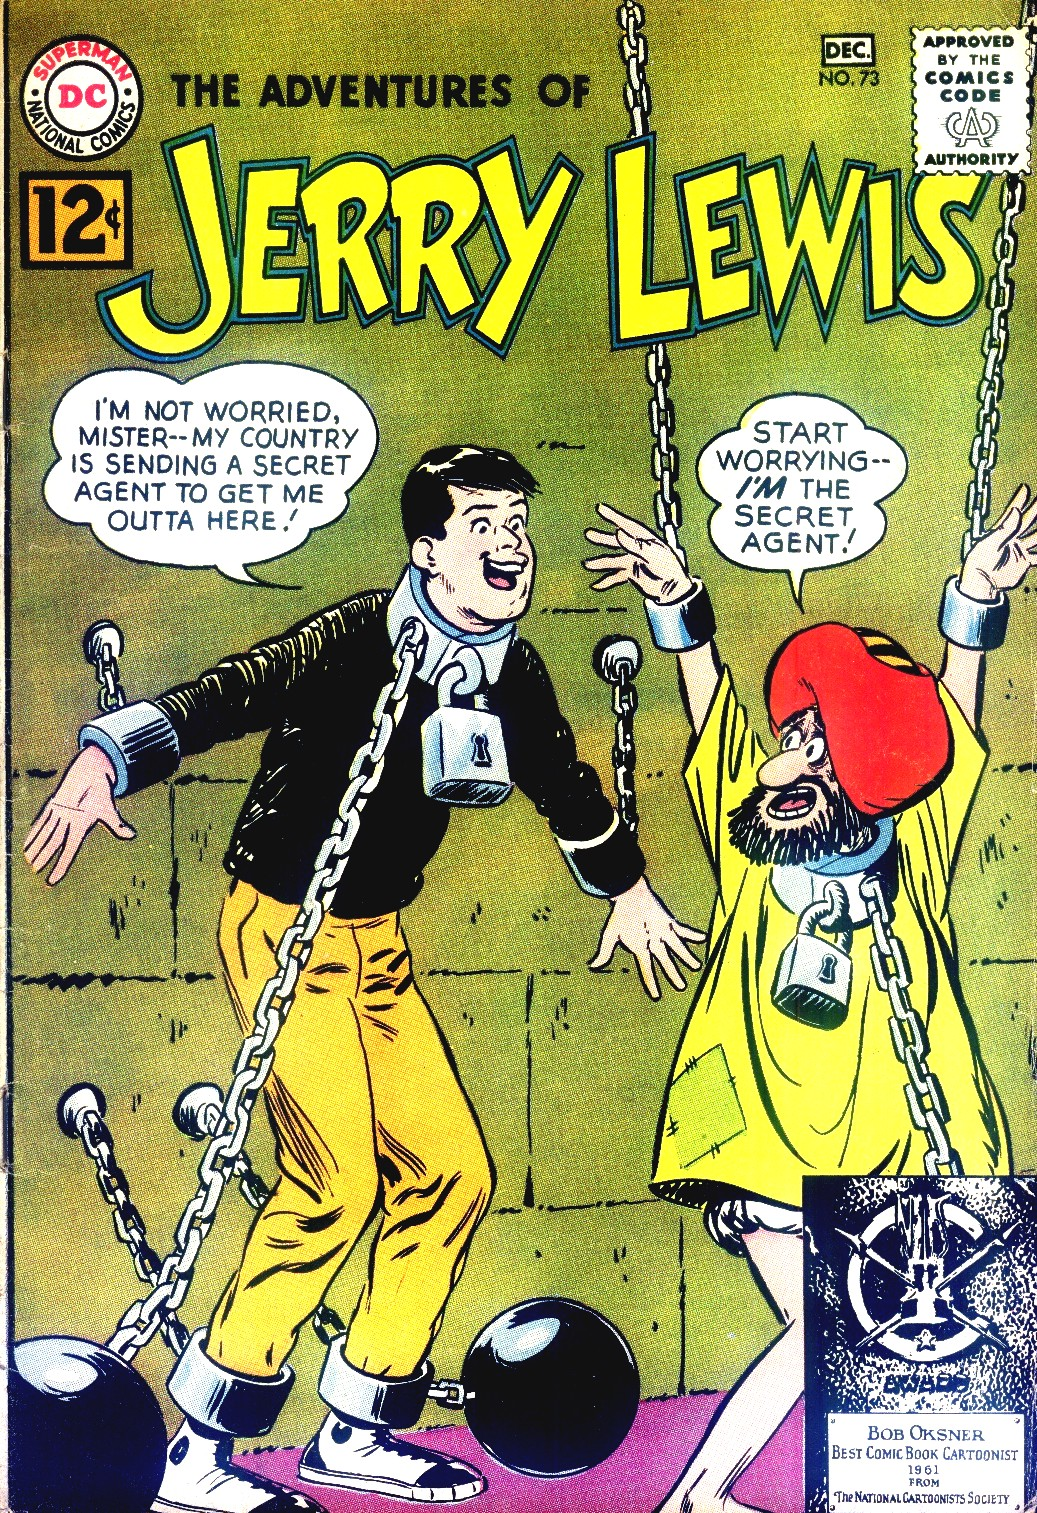 The Adventures of Jerry Lewis 73 Page 1